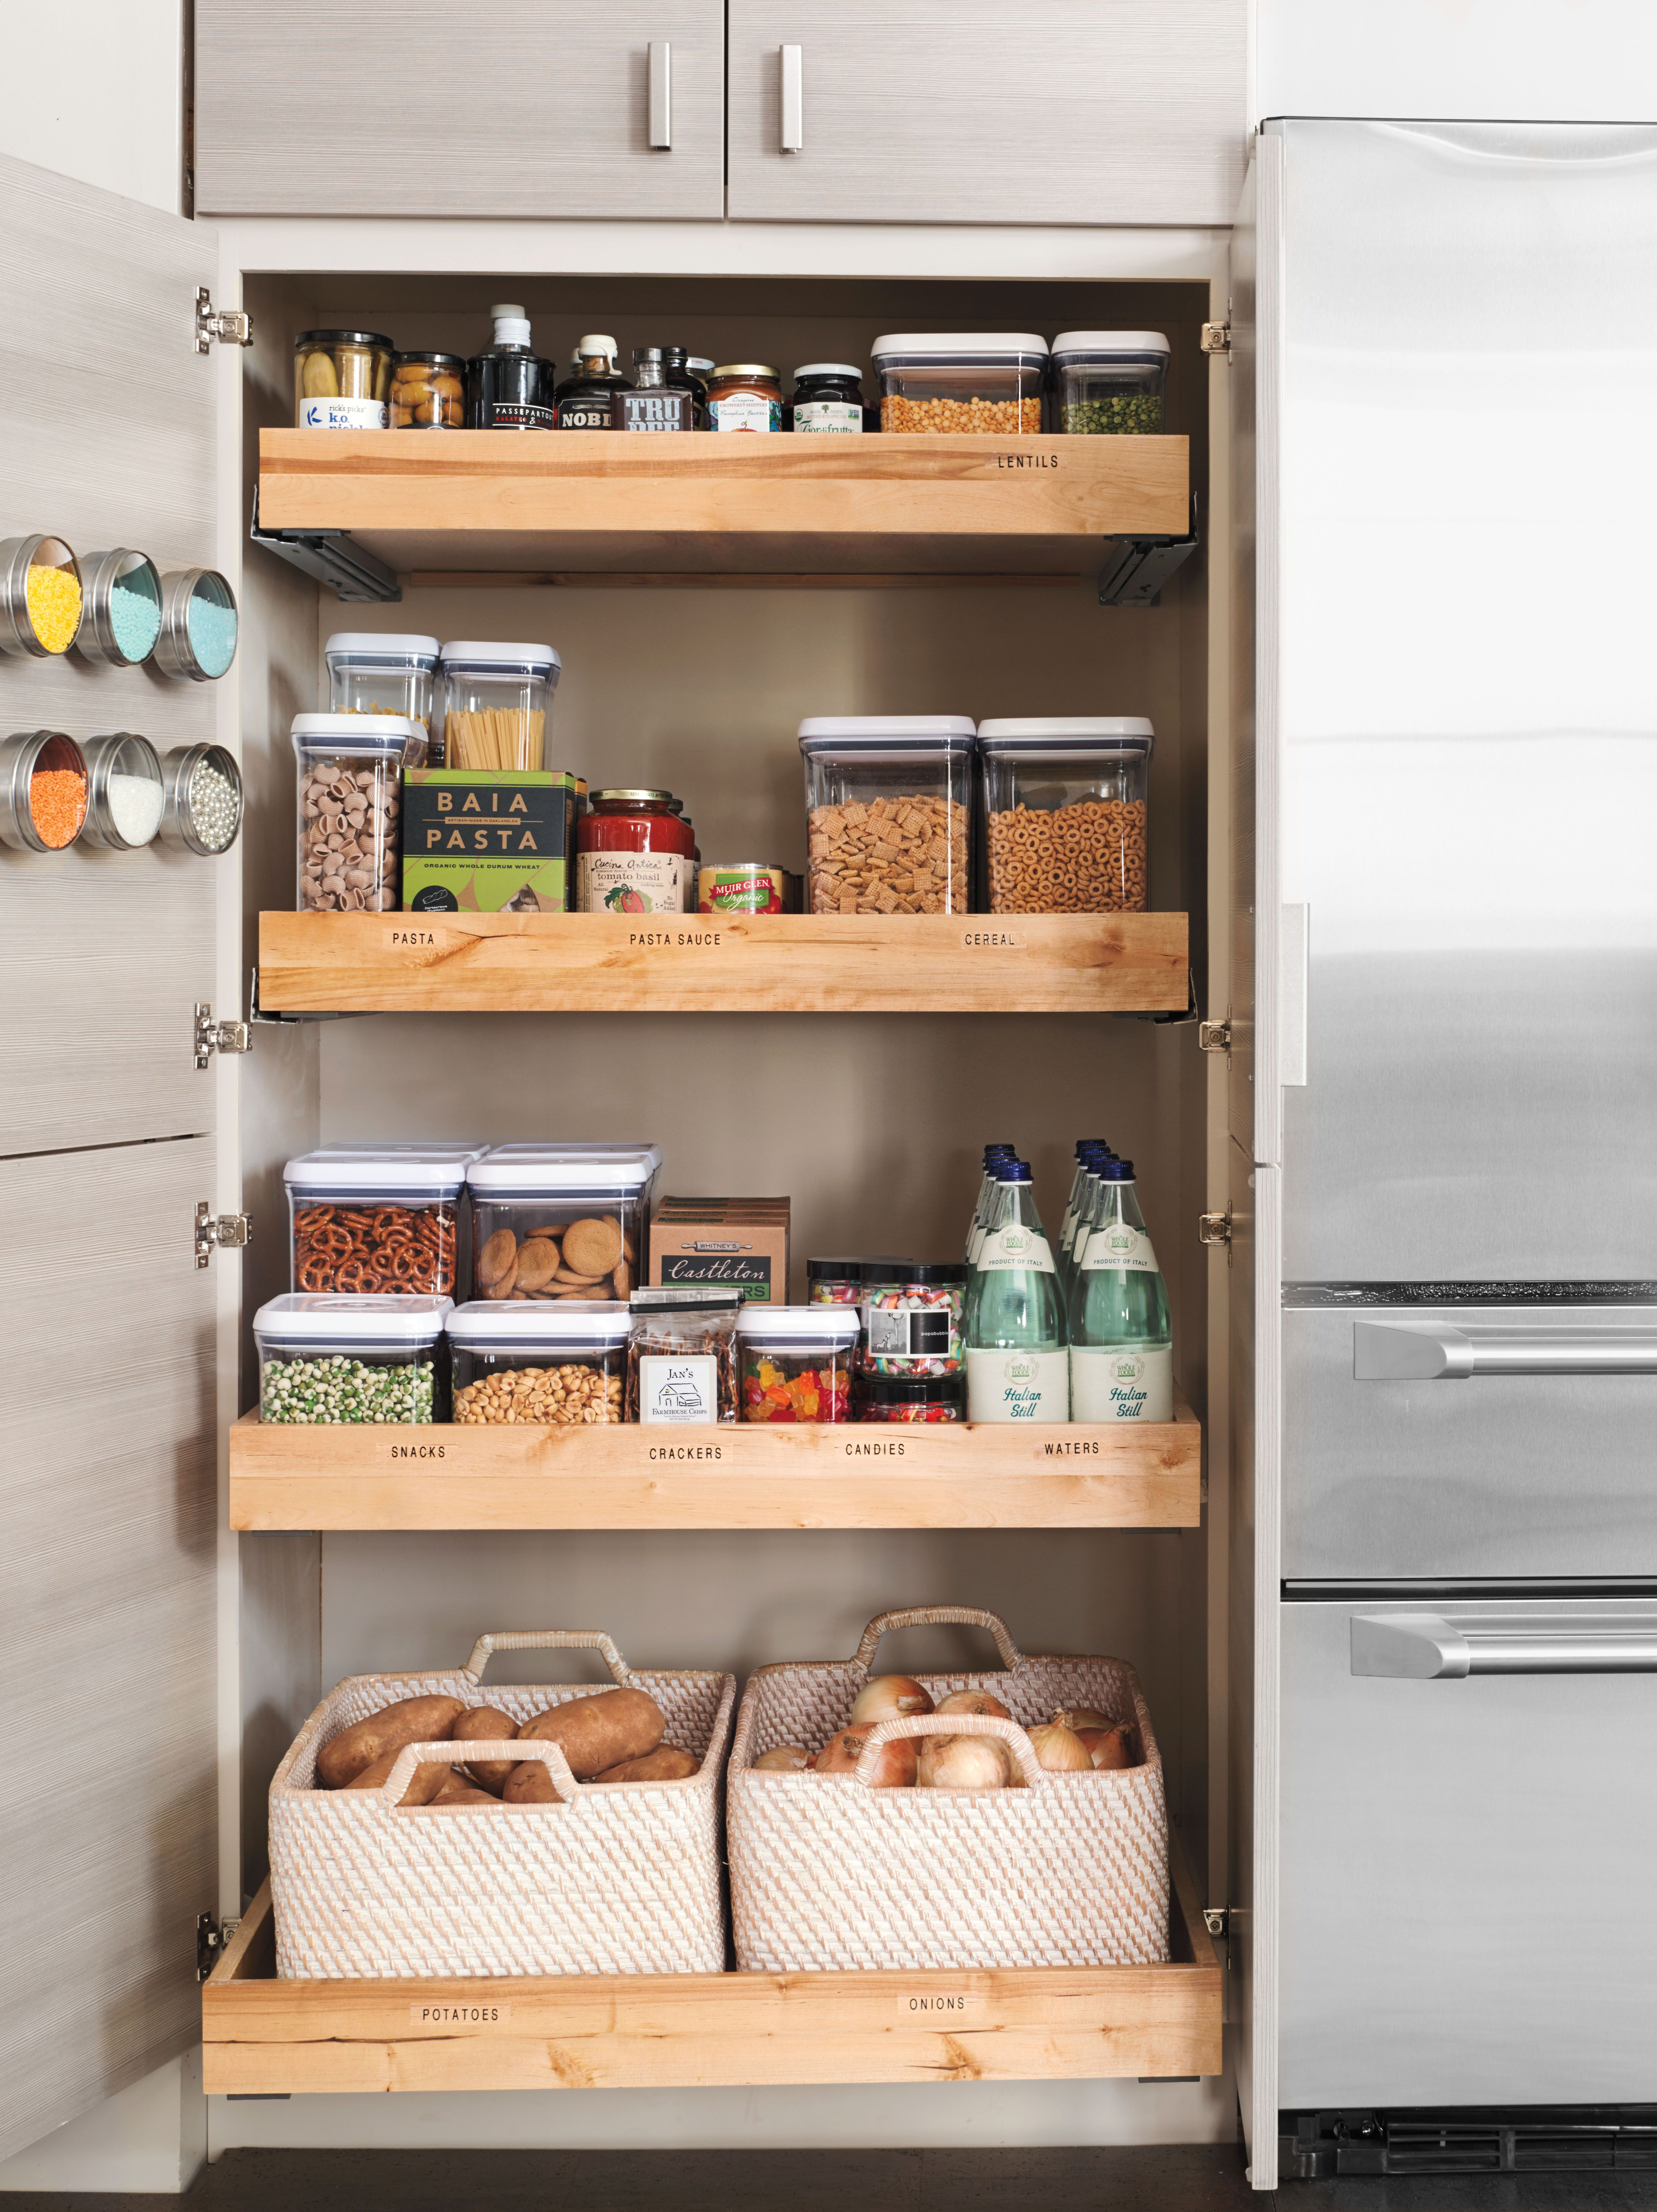 Secrets of a Hardworking Kitchen | Pantry | Pinterest | Rund ums ...